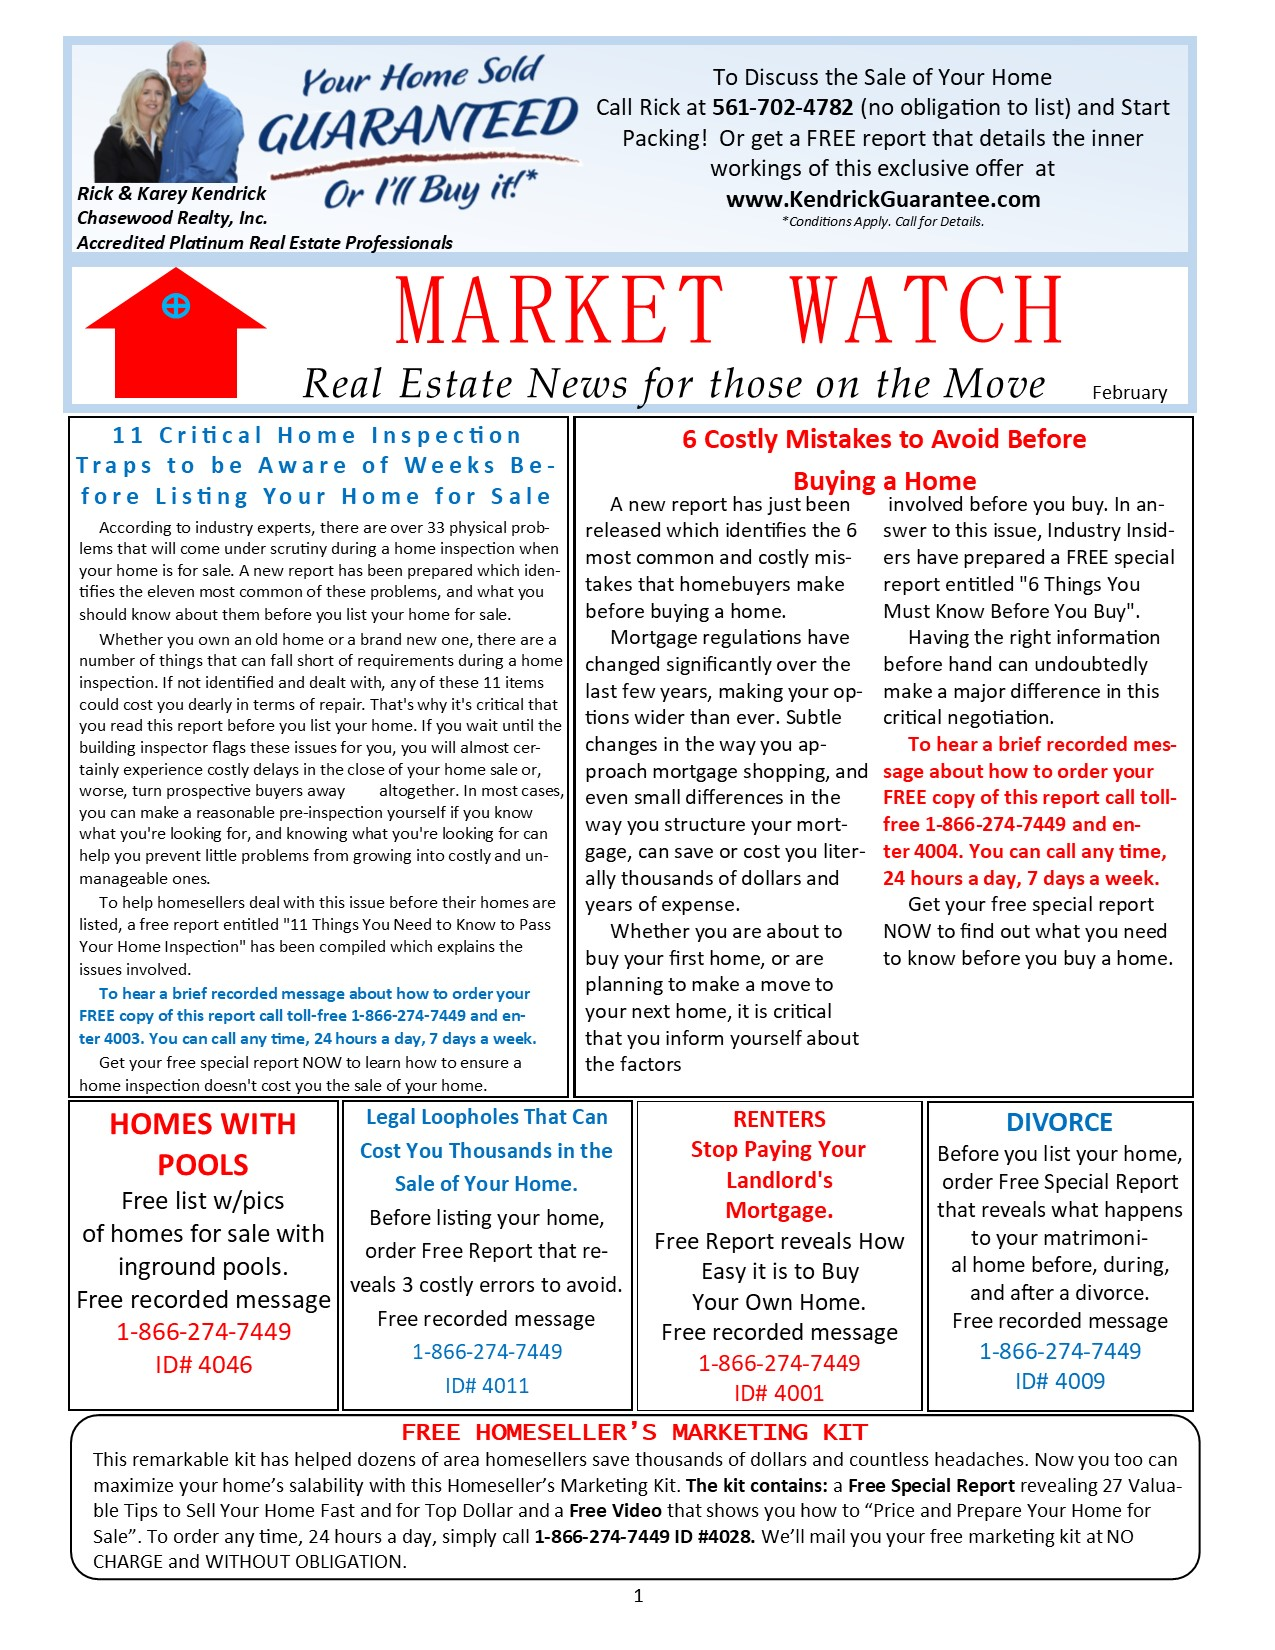 Market Watch Newsletter February 2020